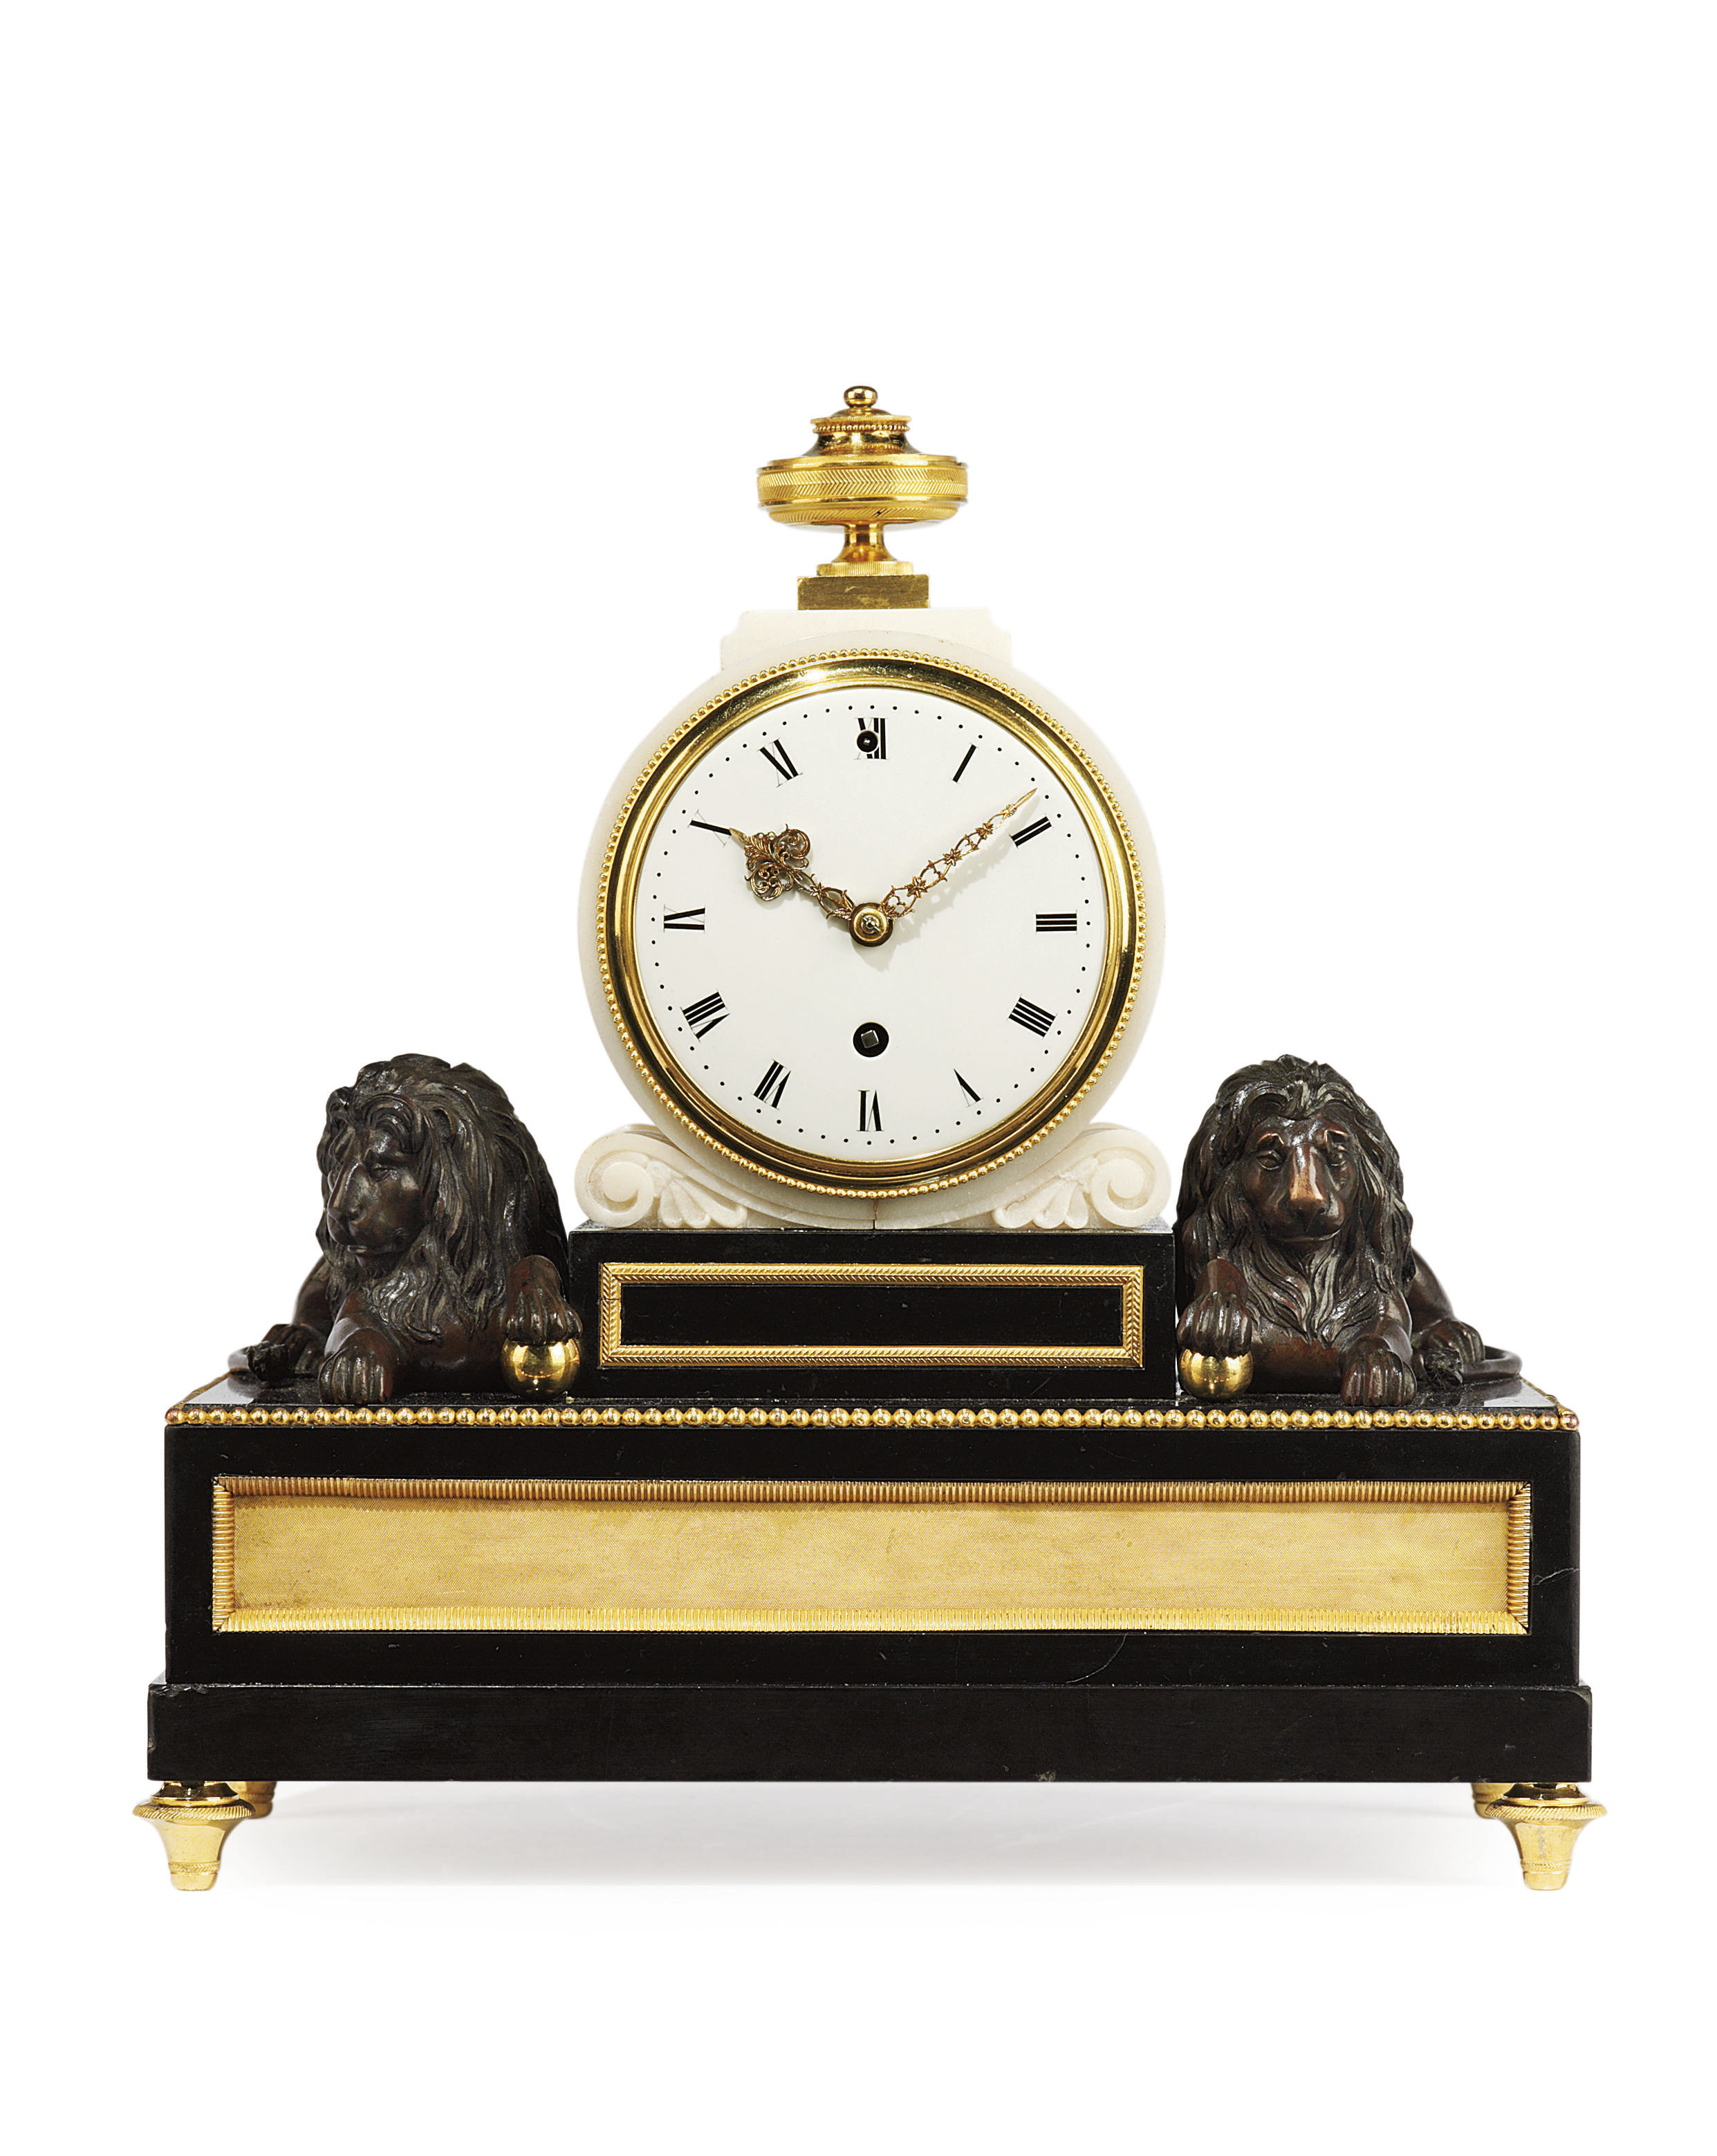 A GEORGE III SMALL ORMOLU AND BRONZE-MOUNTED WHITE MARBLE AND BLACK SLATE MANTEL CLOCK